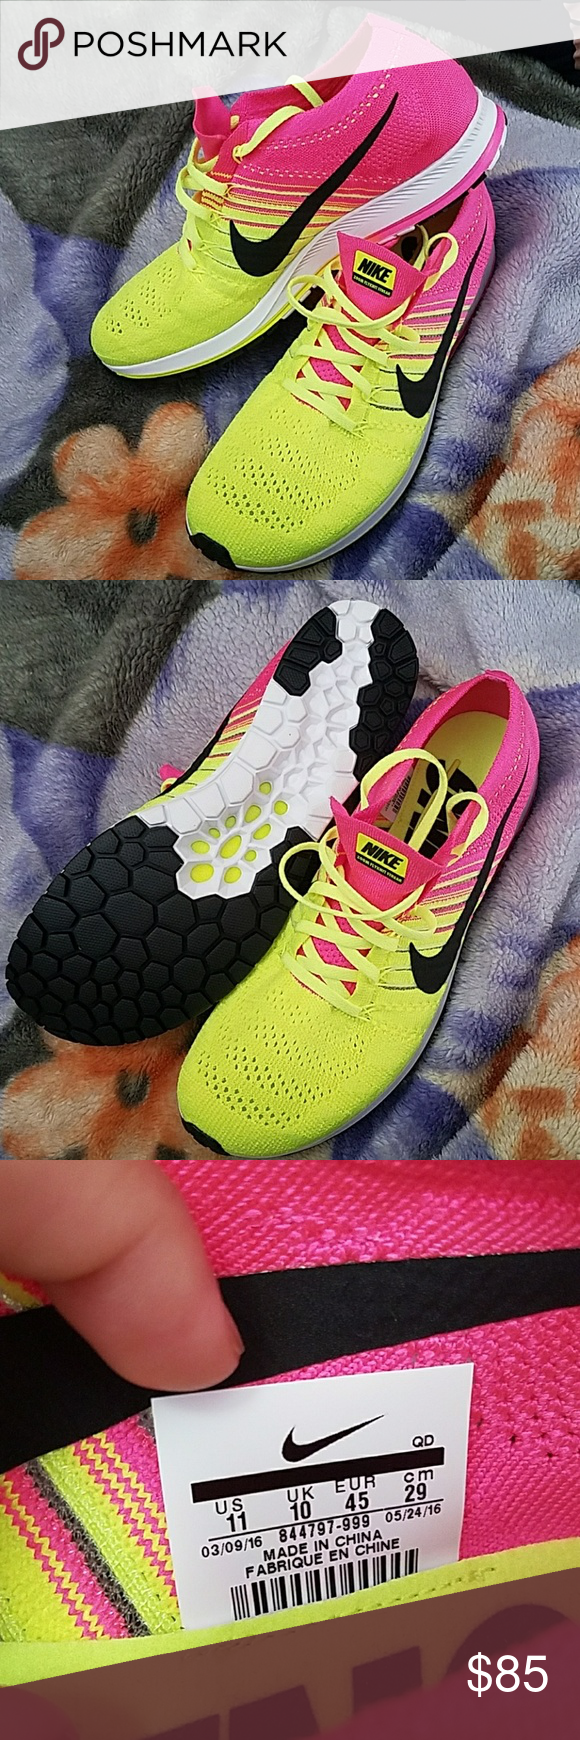 3c829611311d65 nike zoom flyknit streak oc brand new never worn nike zoom flyknit streak oc   no box unisex men s 11 and women s 12.5 Nike Shoes Athletic Shoes